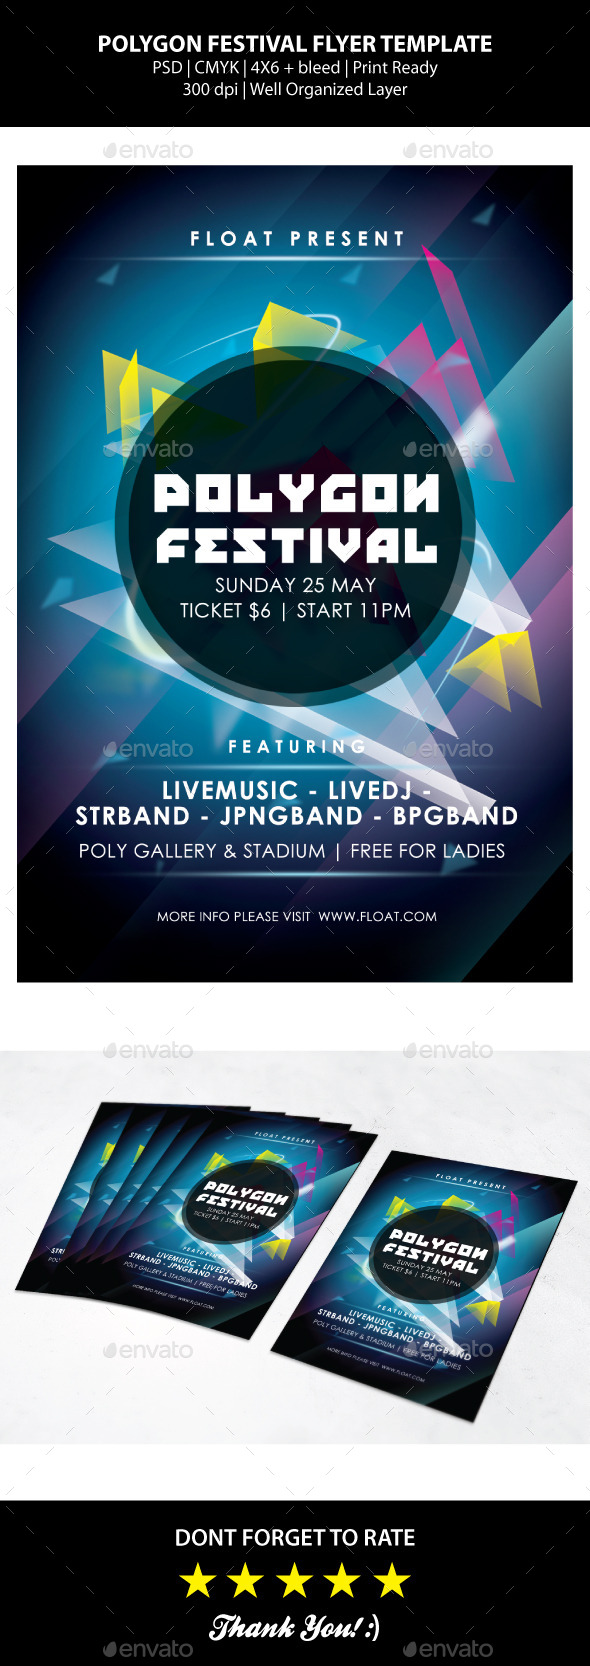 Polygon Festival Flyer Templates - Events Flyers